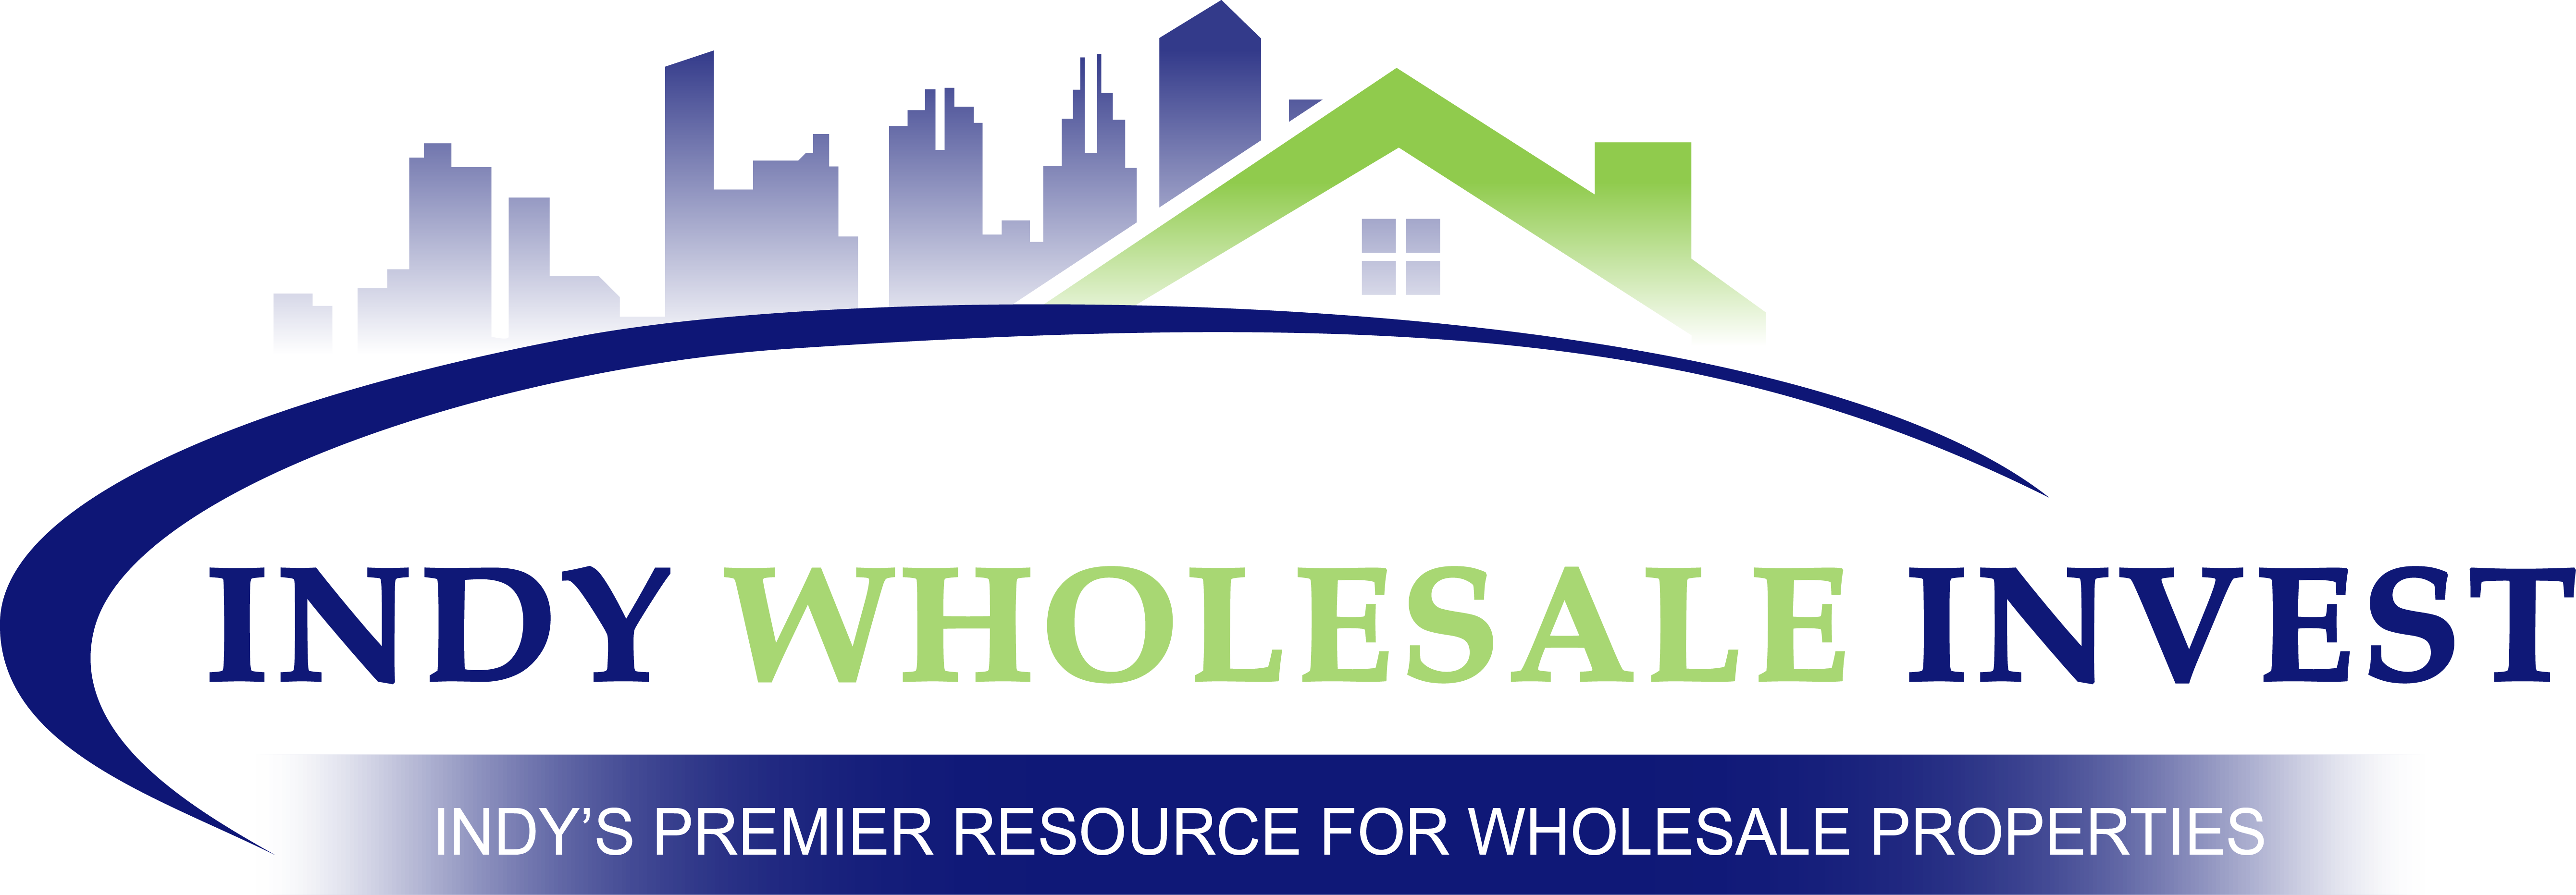 Indy Wholesale Invest, LLC